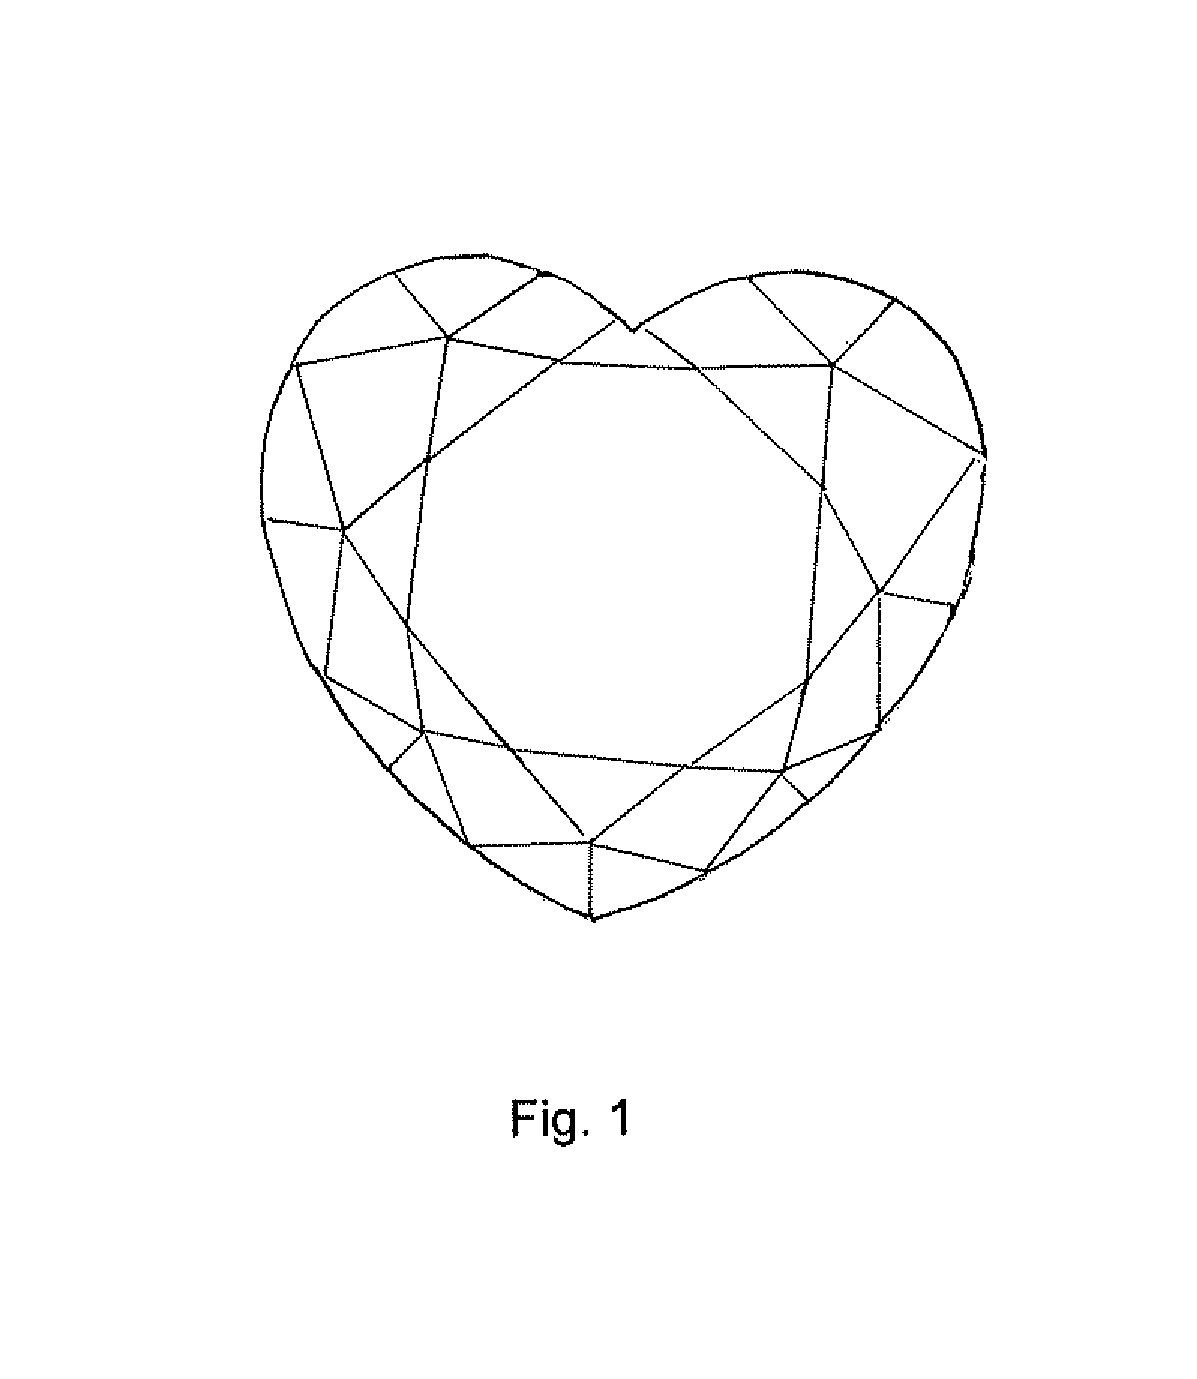 patent usd567137 heart shaped diamond or similar article